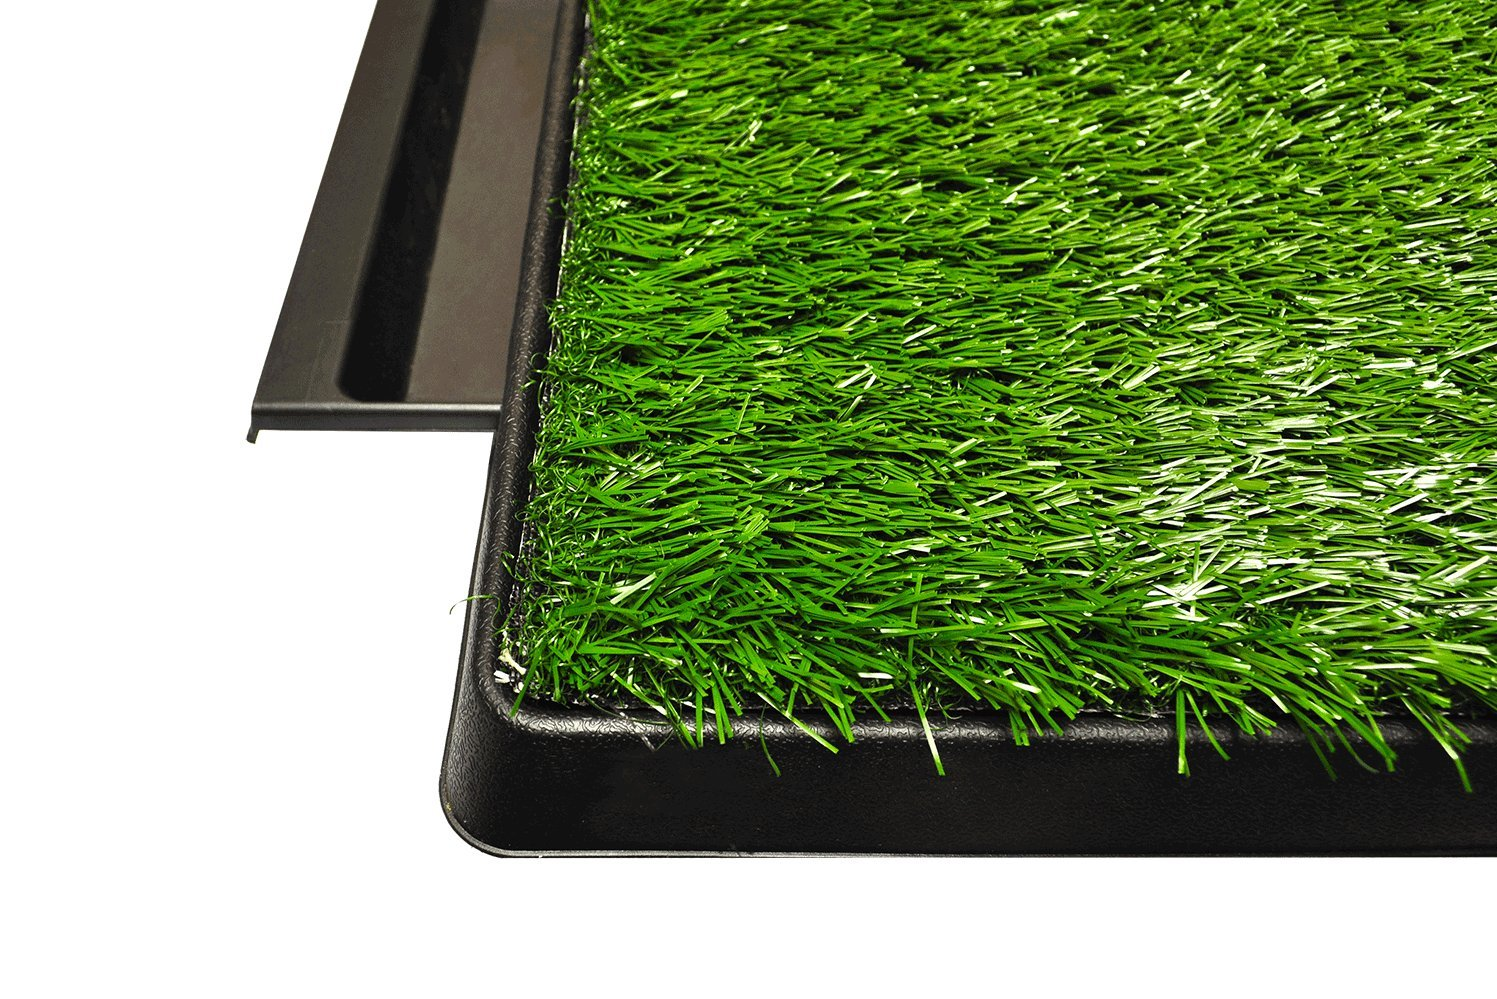 Downtown Pet Supply Dog Pee Potty Pad, Bathroom Tinkle Artificial Grass Turf, Portable Potty Trainer (20 x 25 inches with Drawer) by Downtown Pet Supply (Image #5)